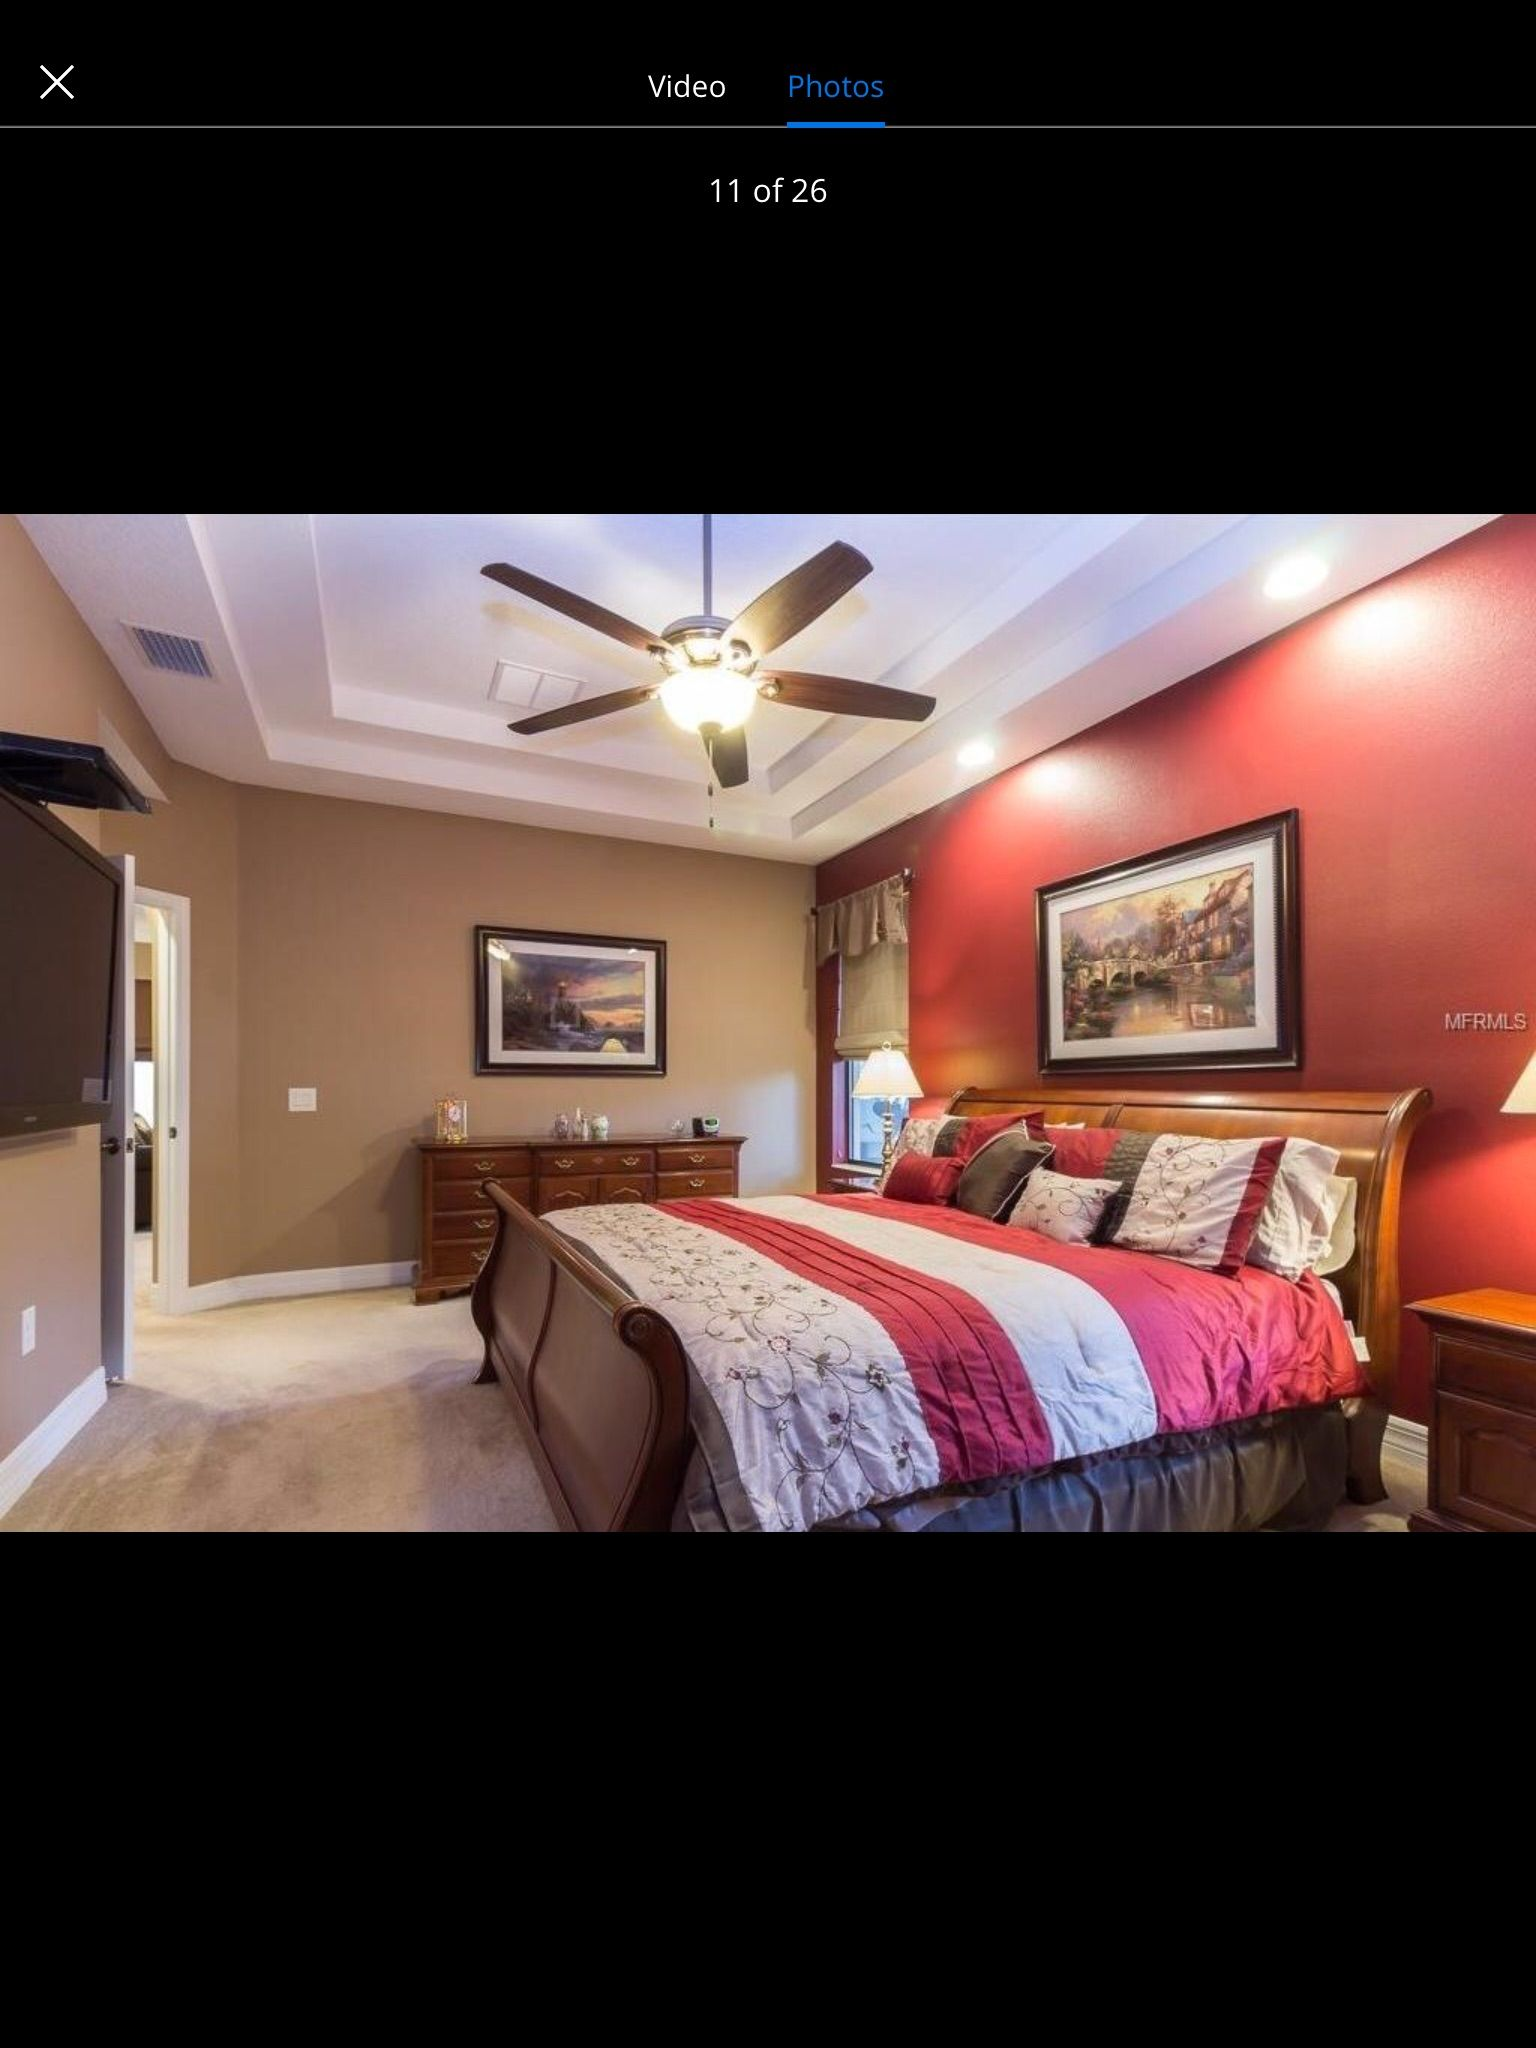 26 beautiful burgundy accents for fall home d 233 cor digsdigs - Burgundy Accent Wall With Tan Walls Master Bedroom